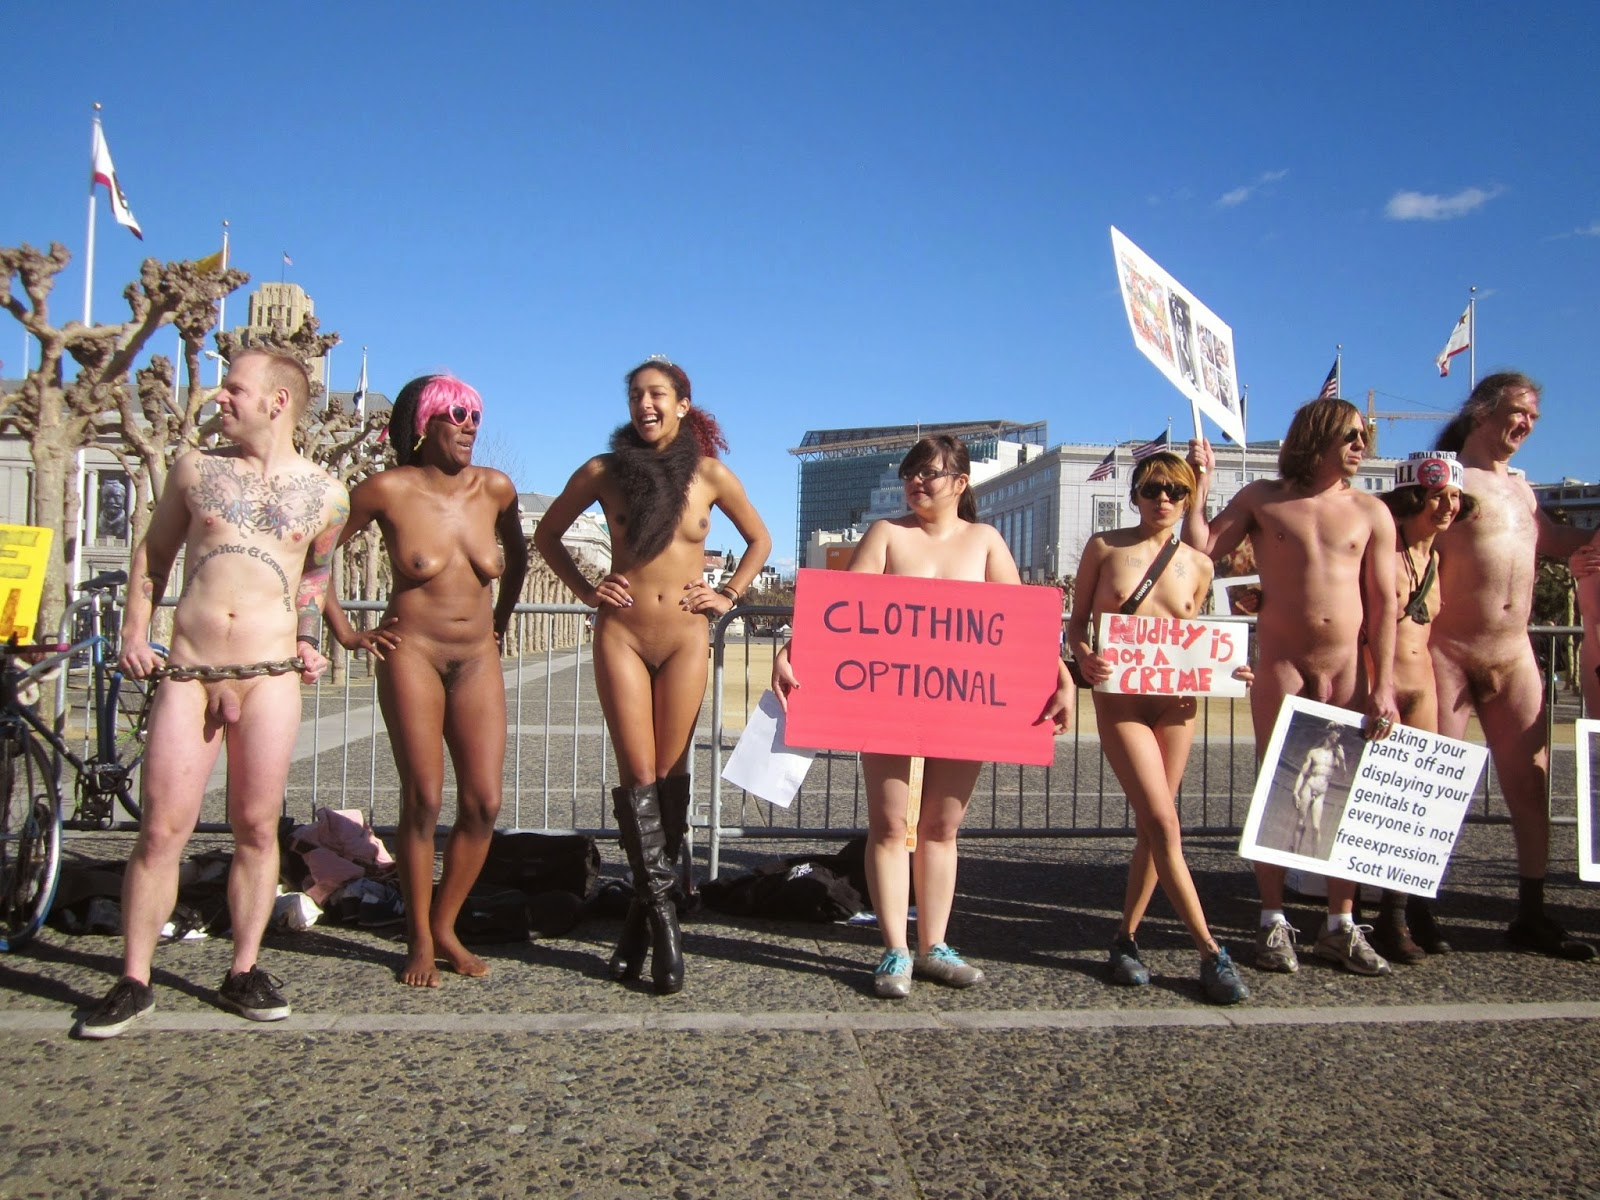 Protesting the nudity ban in San Francisco